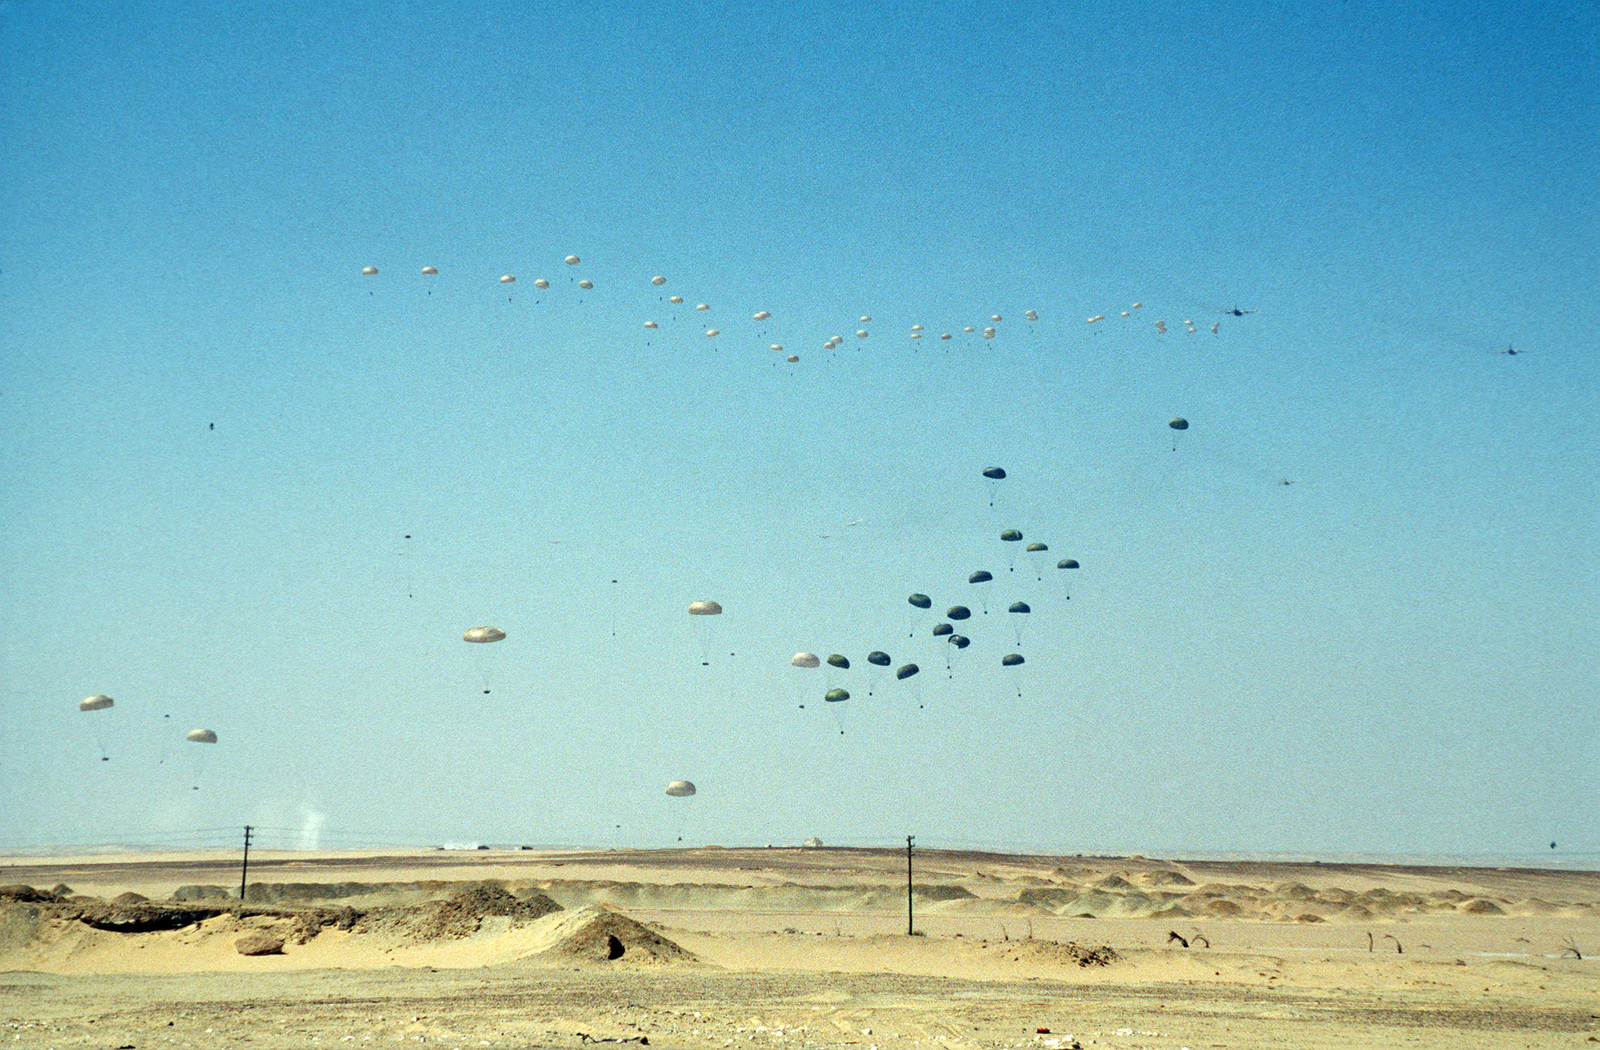 Paratroopers jump from C-130 Hercules aircraft during the multinational, joint service Exercise BRIGHT STAR'87